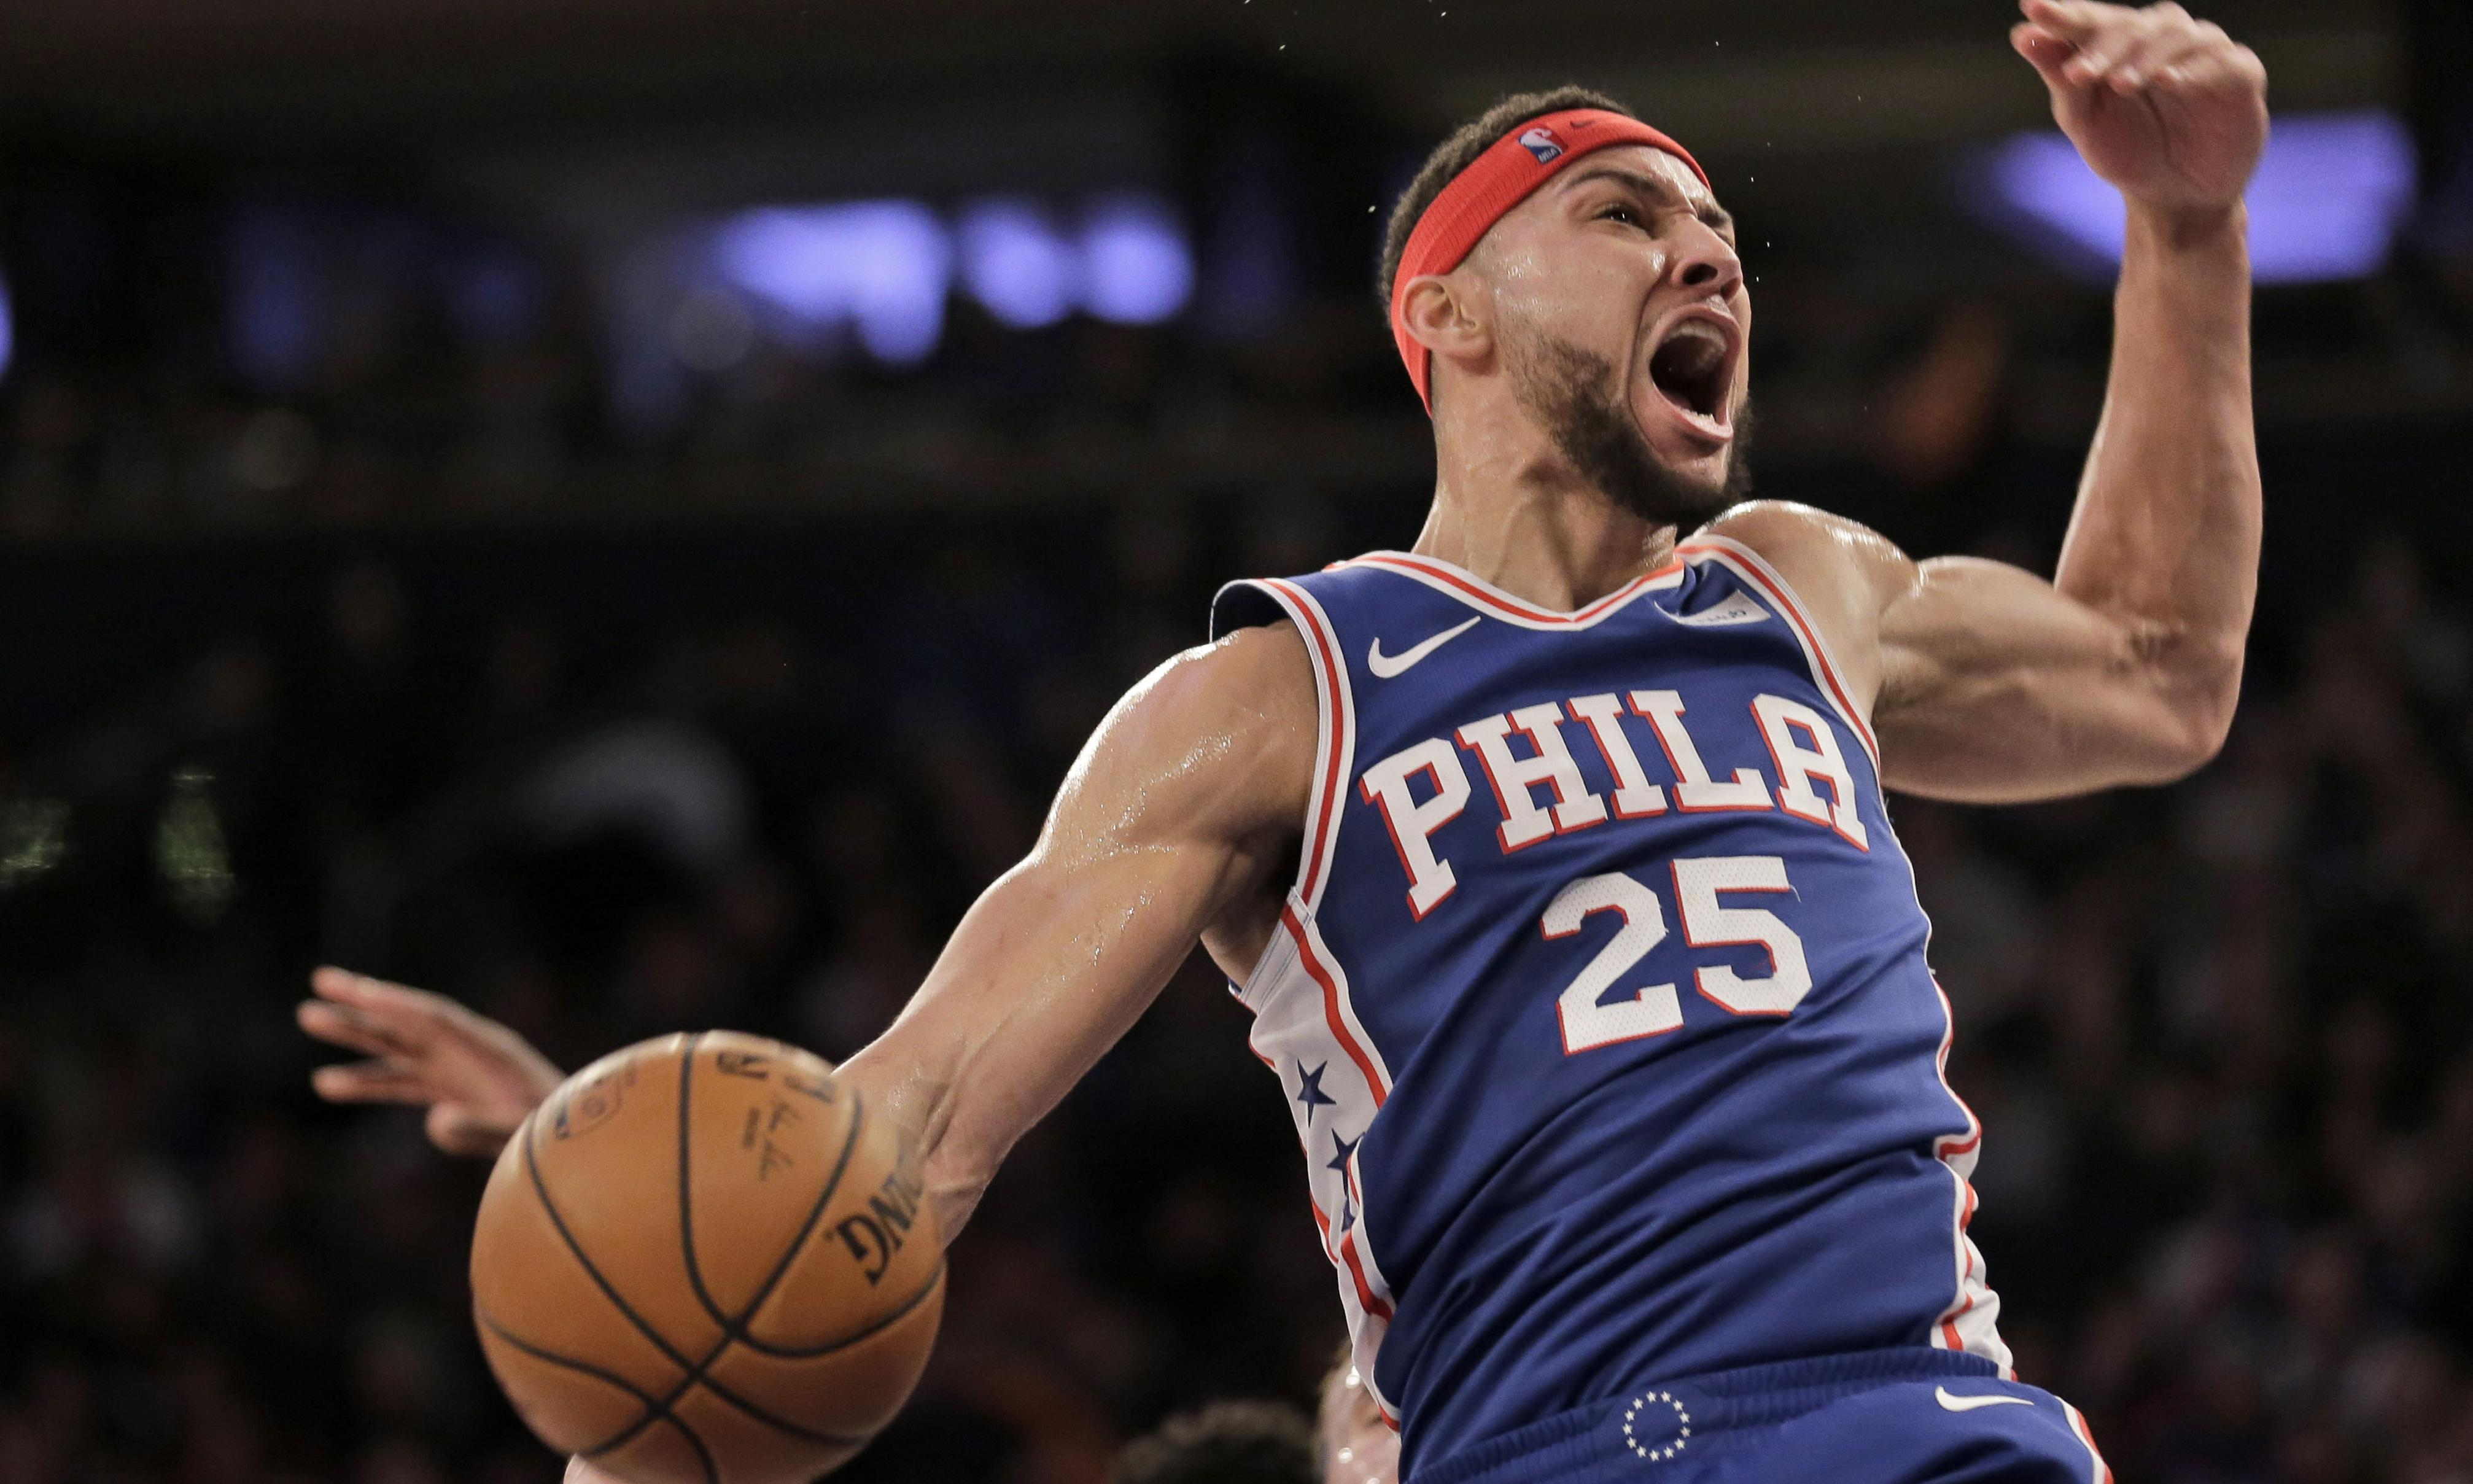 Ben Simmons becomes Australia's richest athlete with huge 76ers deal